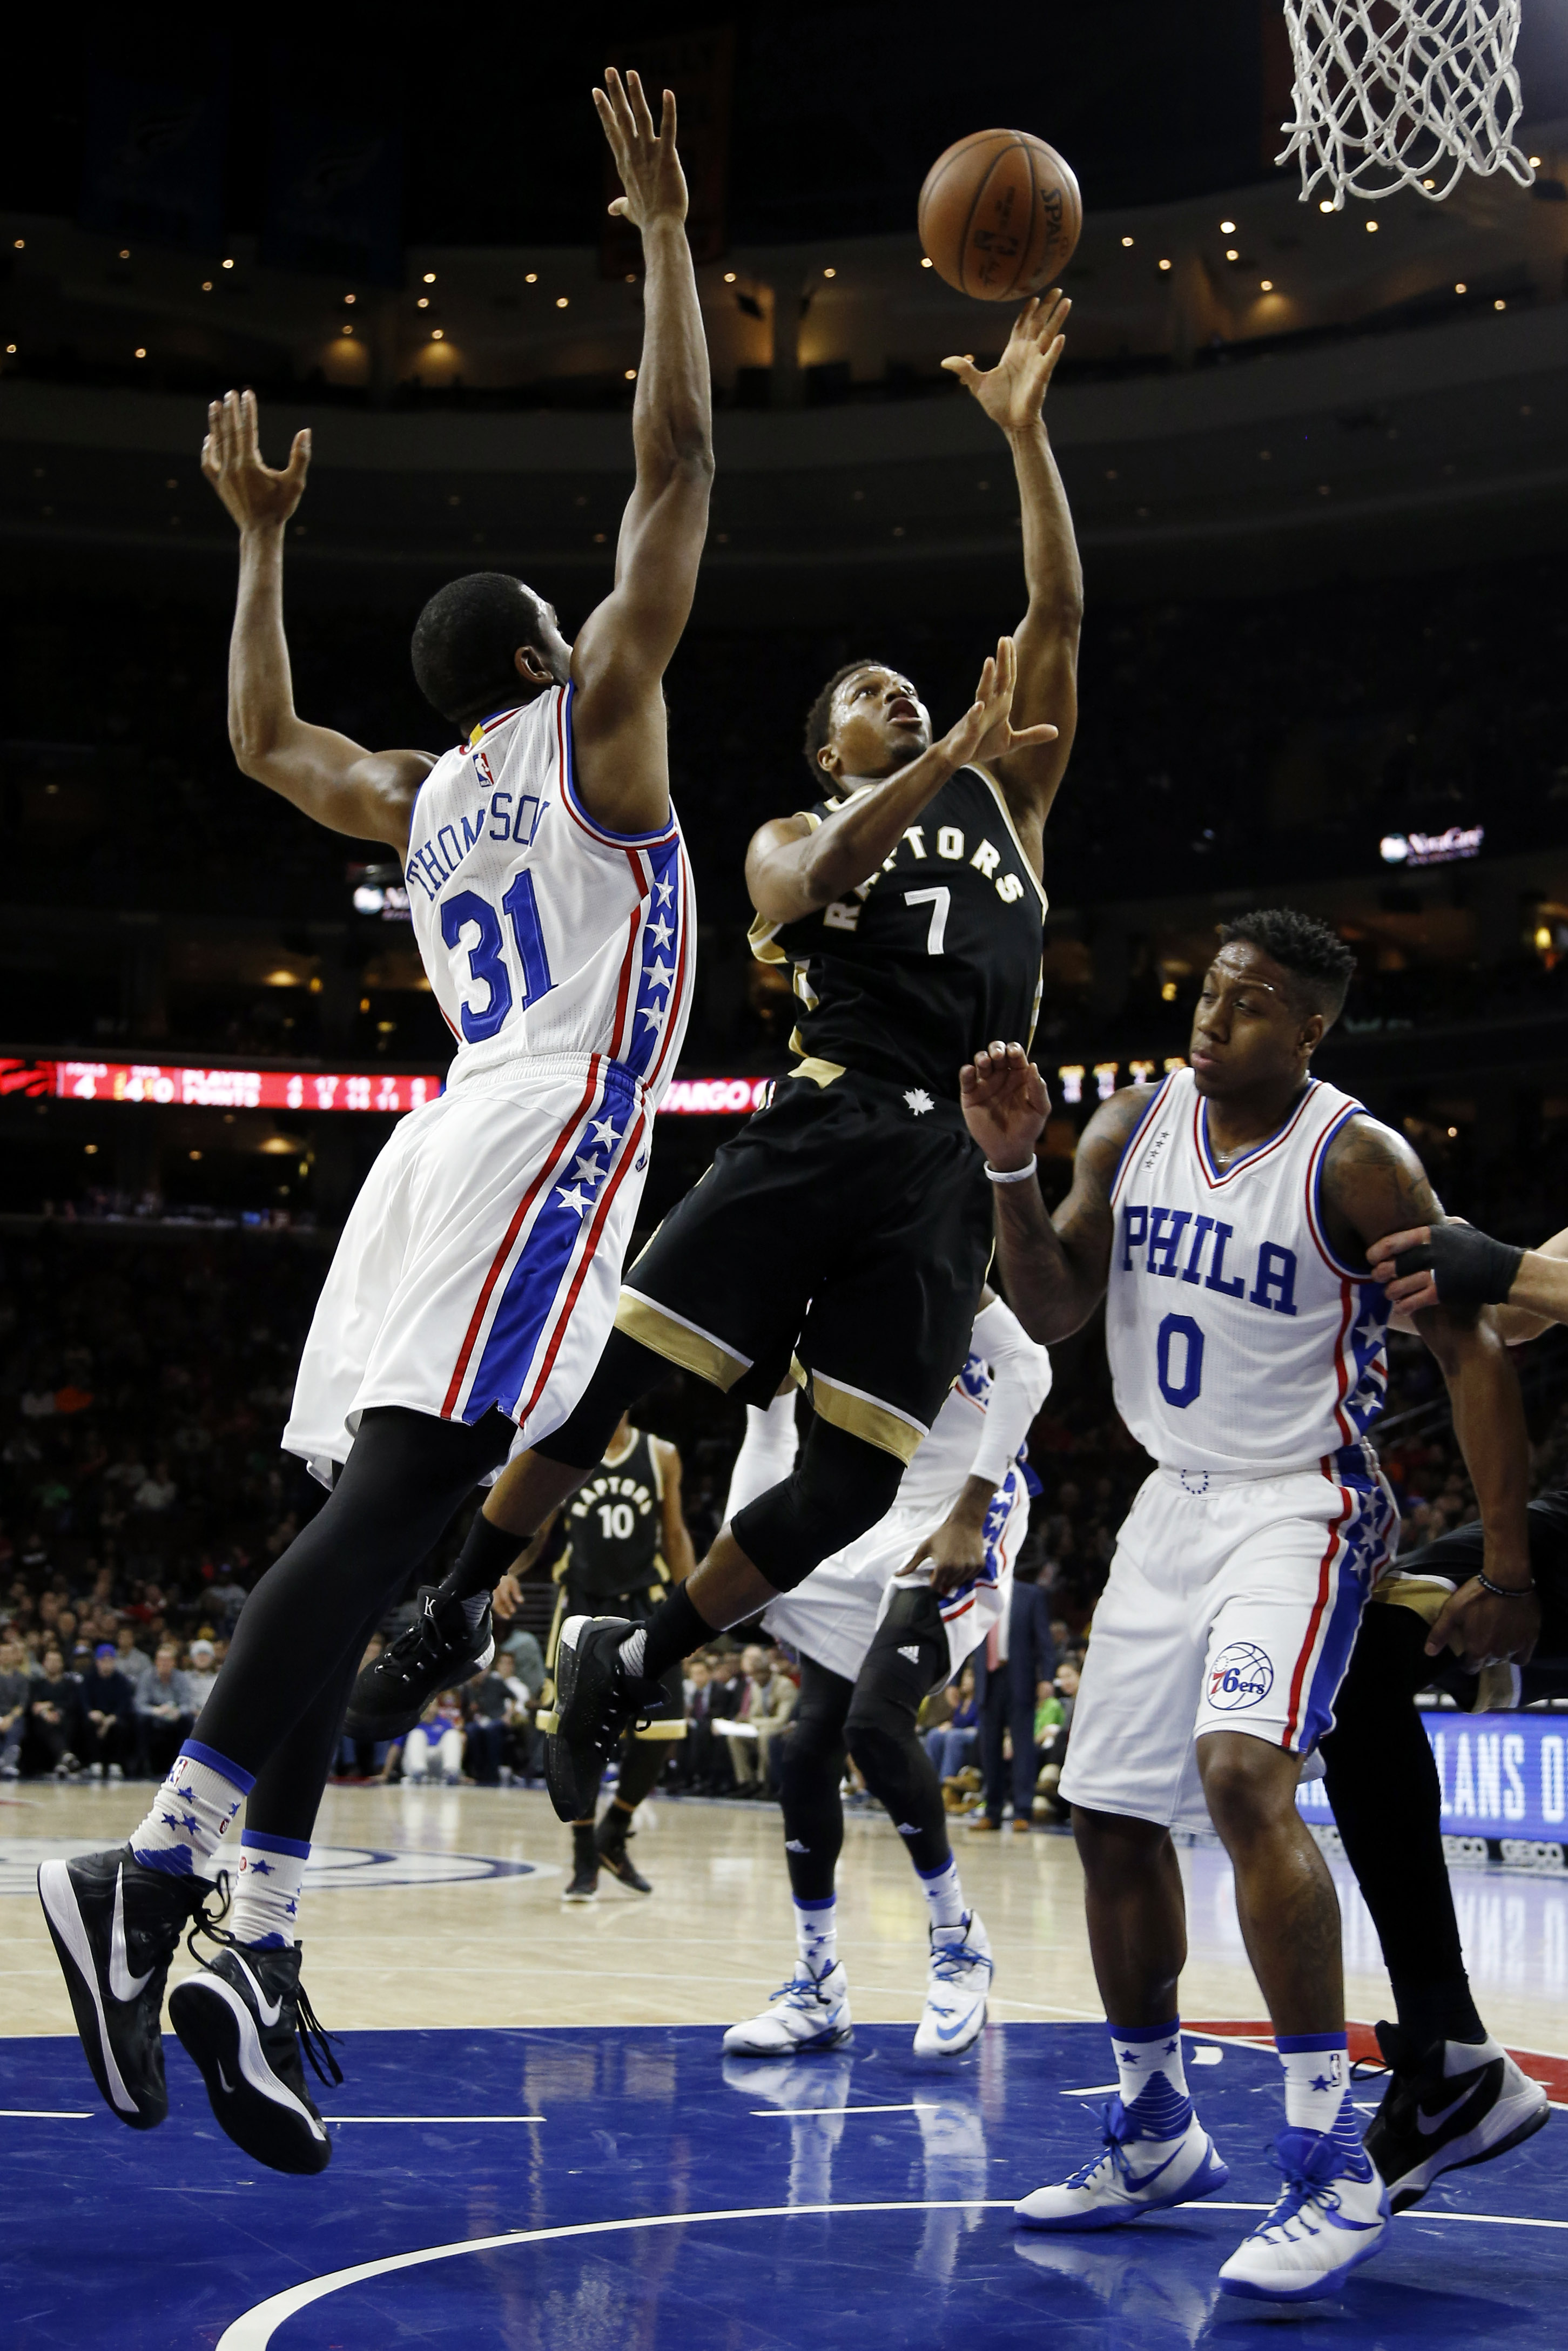 Toronto Raptors' Kyle Lowry (7) goes up for a shot between Philadelphia 76ers' Hollis Thompson (31) and Isaiah Canaan (0) during the first half of an NBA basketball game, Saturday, Jan. 9, 2016, in Philadelphia. (AP Photo/Matt Slocum)